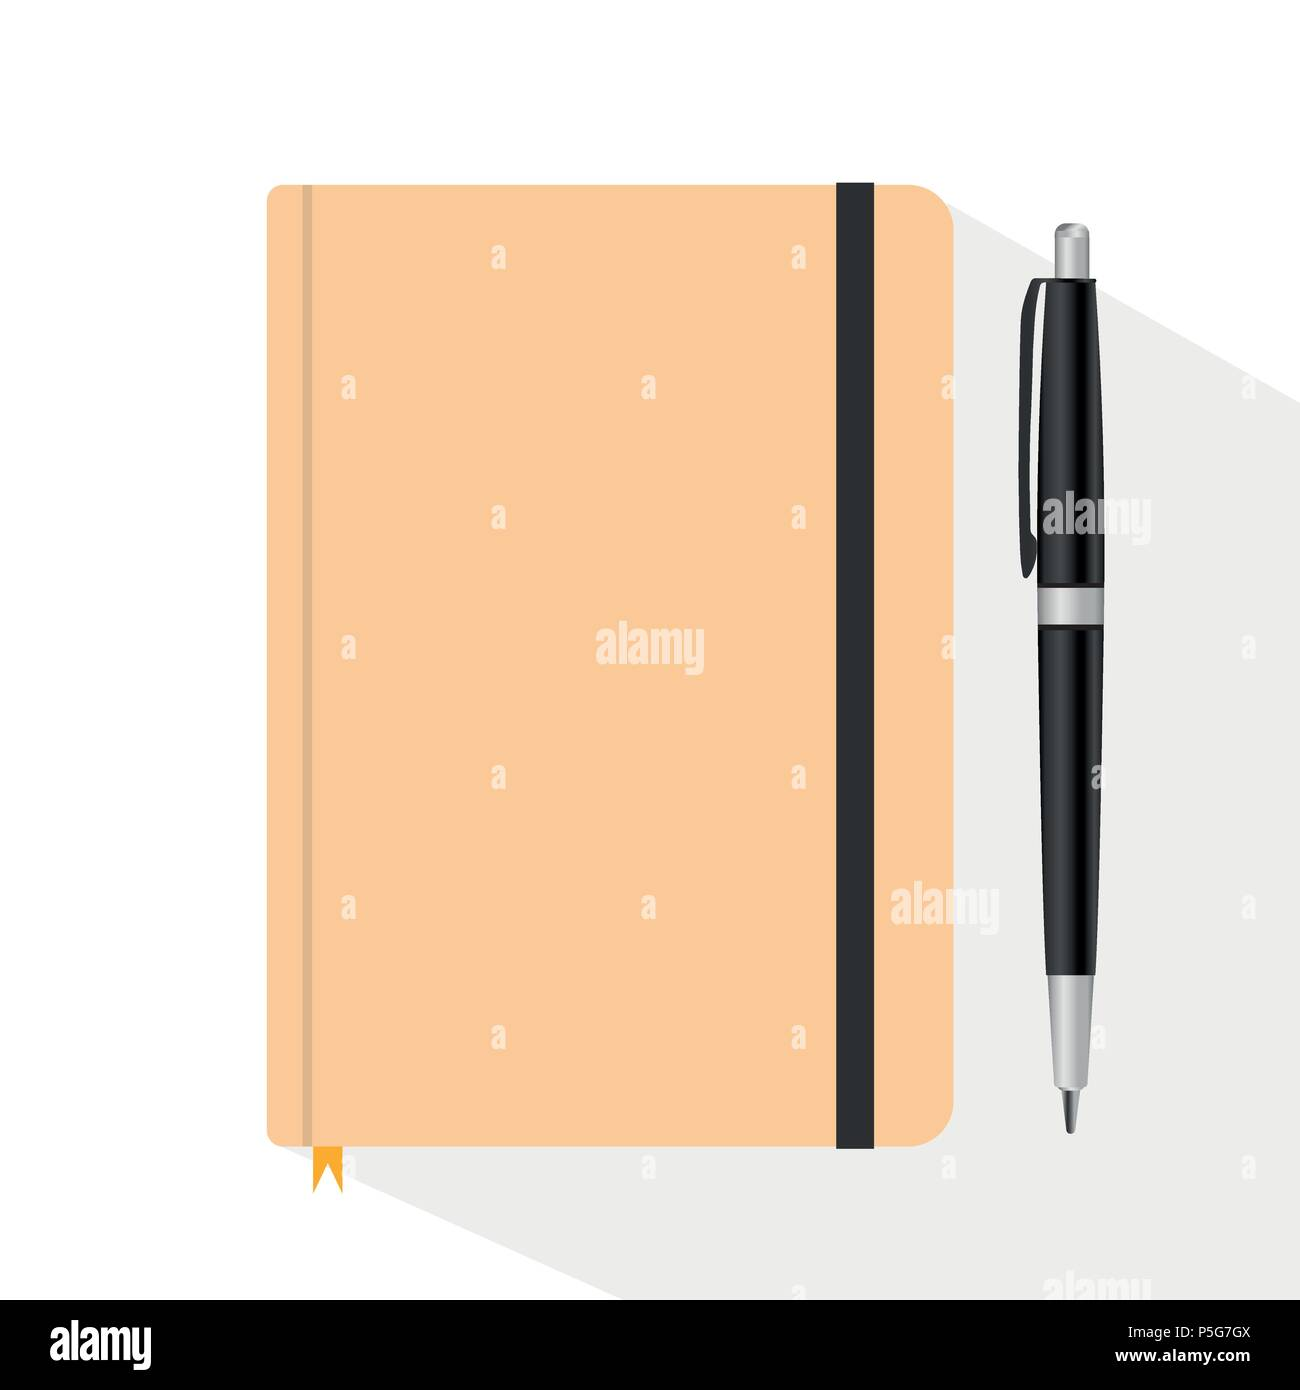 Top view desk of Spiral Notebook and Pen isolated on white background, Flat design Vector Illustration. - Stock Vector